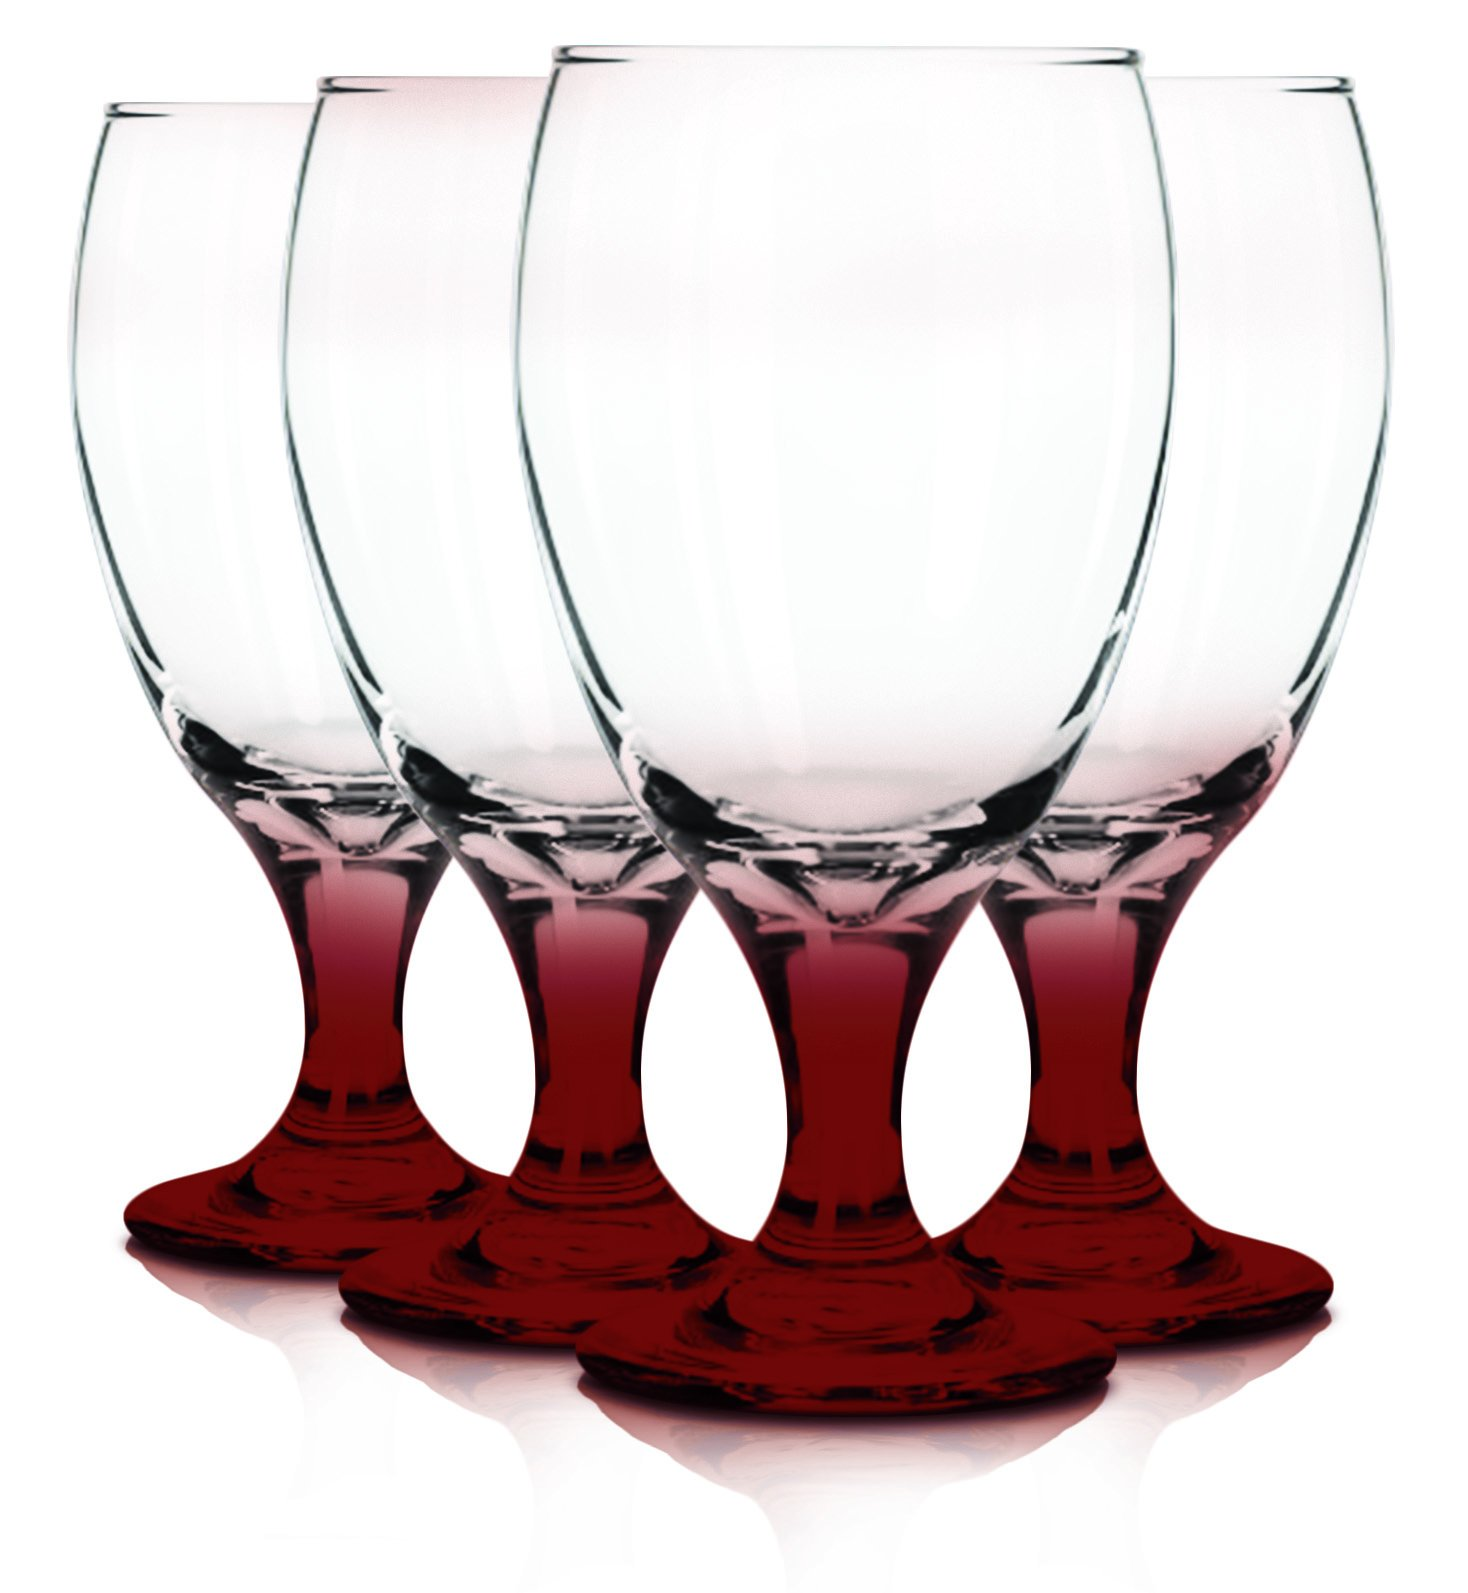 Libbey 6 Piece Goblet Party Glass, 16.25-Ounce Additional Vibrant Colors Available by TableTop King (Bottom Red)